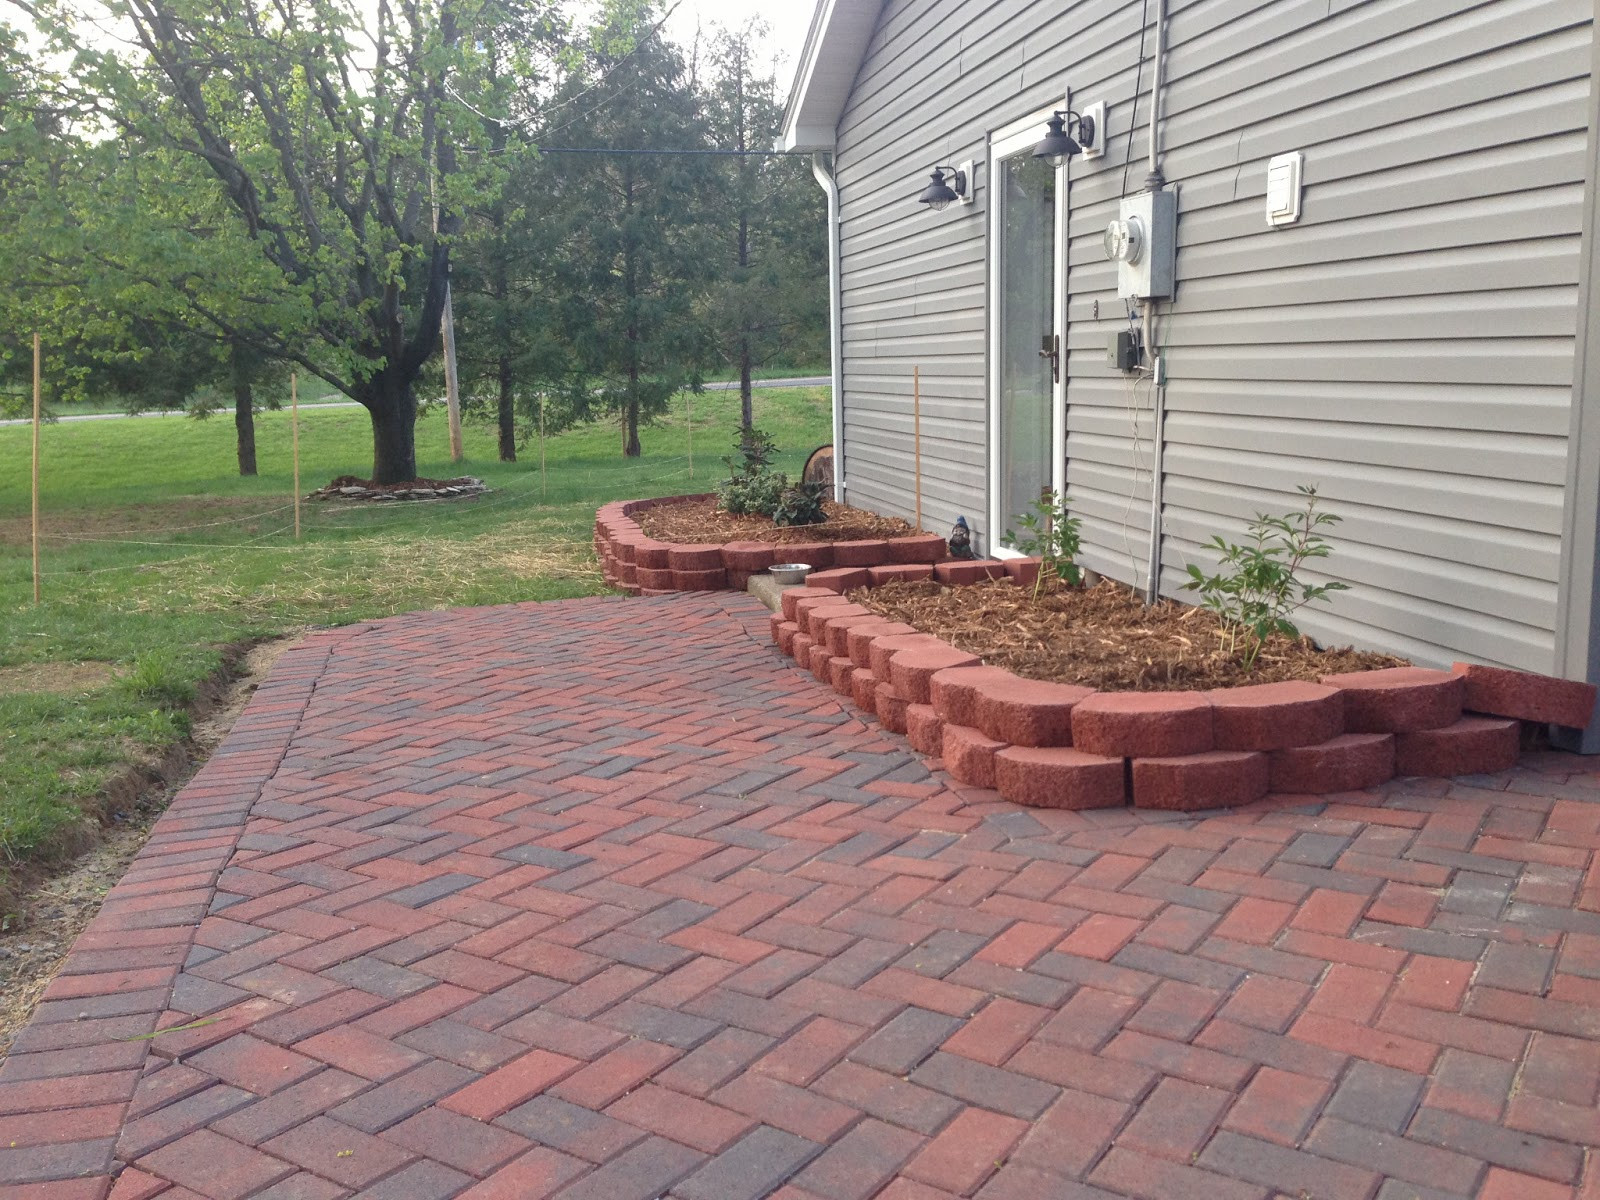 Best ideas about DIY Pavers Patio . Save or Pin Newlywed Nesters DIY Paver Patio Now.